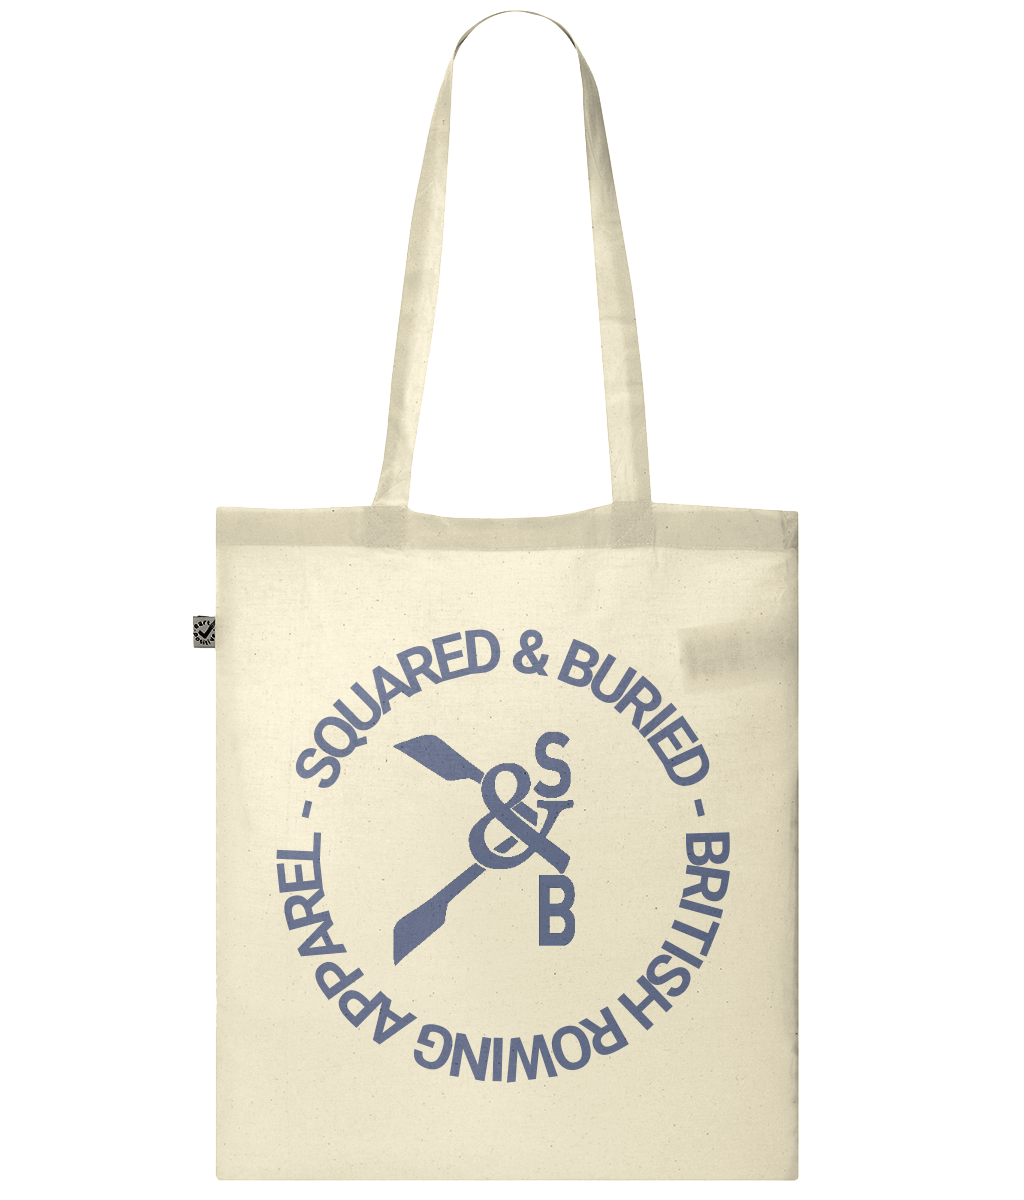 CLASSIC GREVILLE ORGANIC SHOPPER TOTE BAG - British Rowing Apparel - Squared & Buried